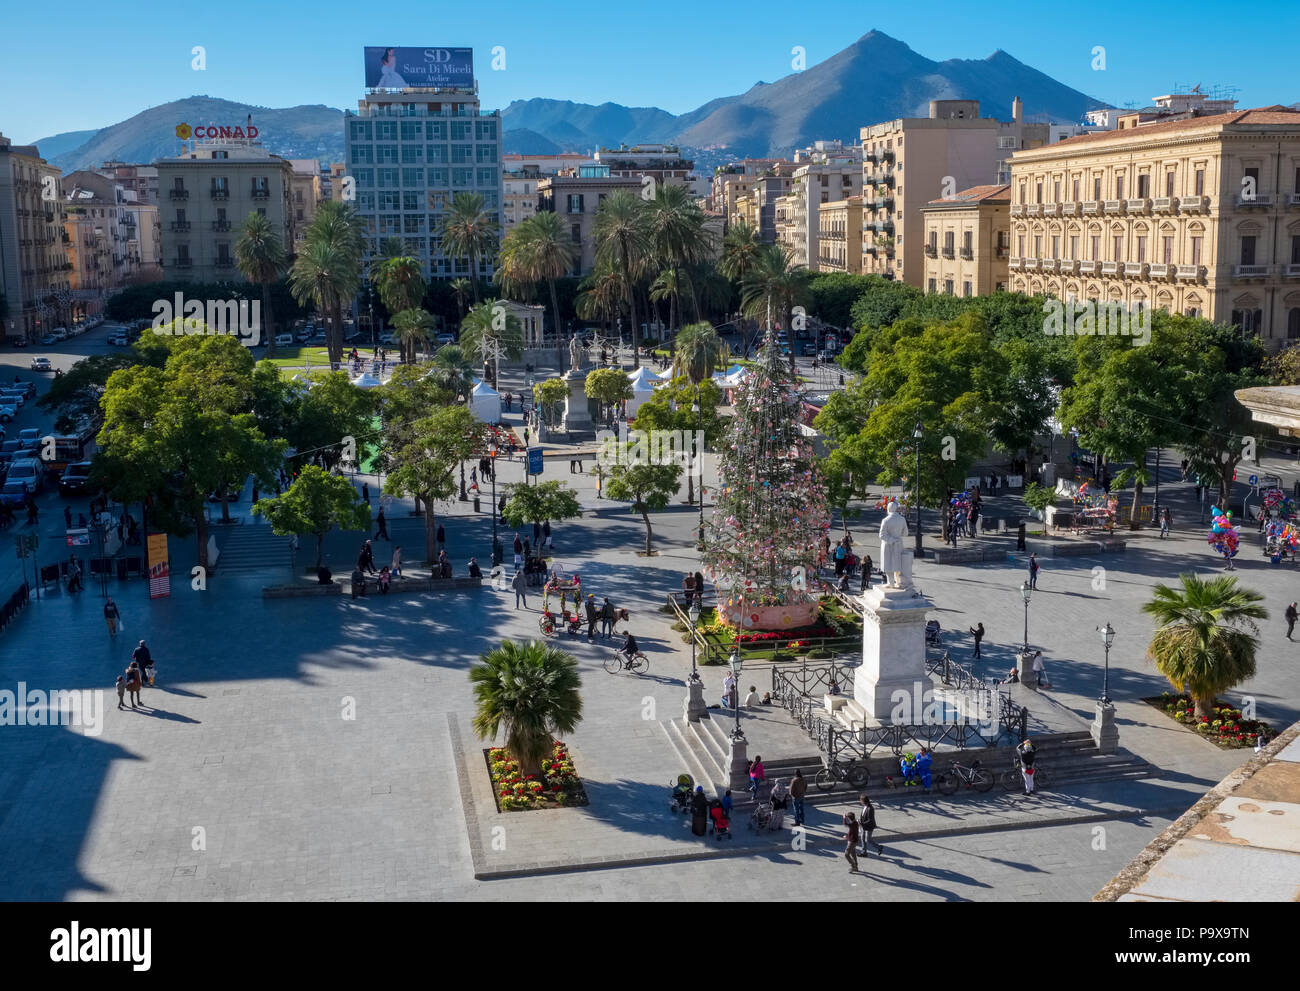 Palermo, Sicily, Italy, Piazza Politeama square with people in the city centre - Stock Image